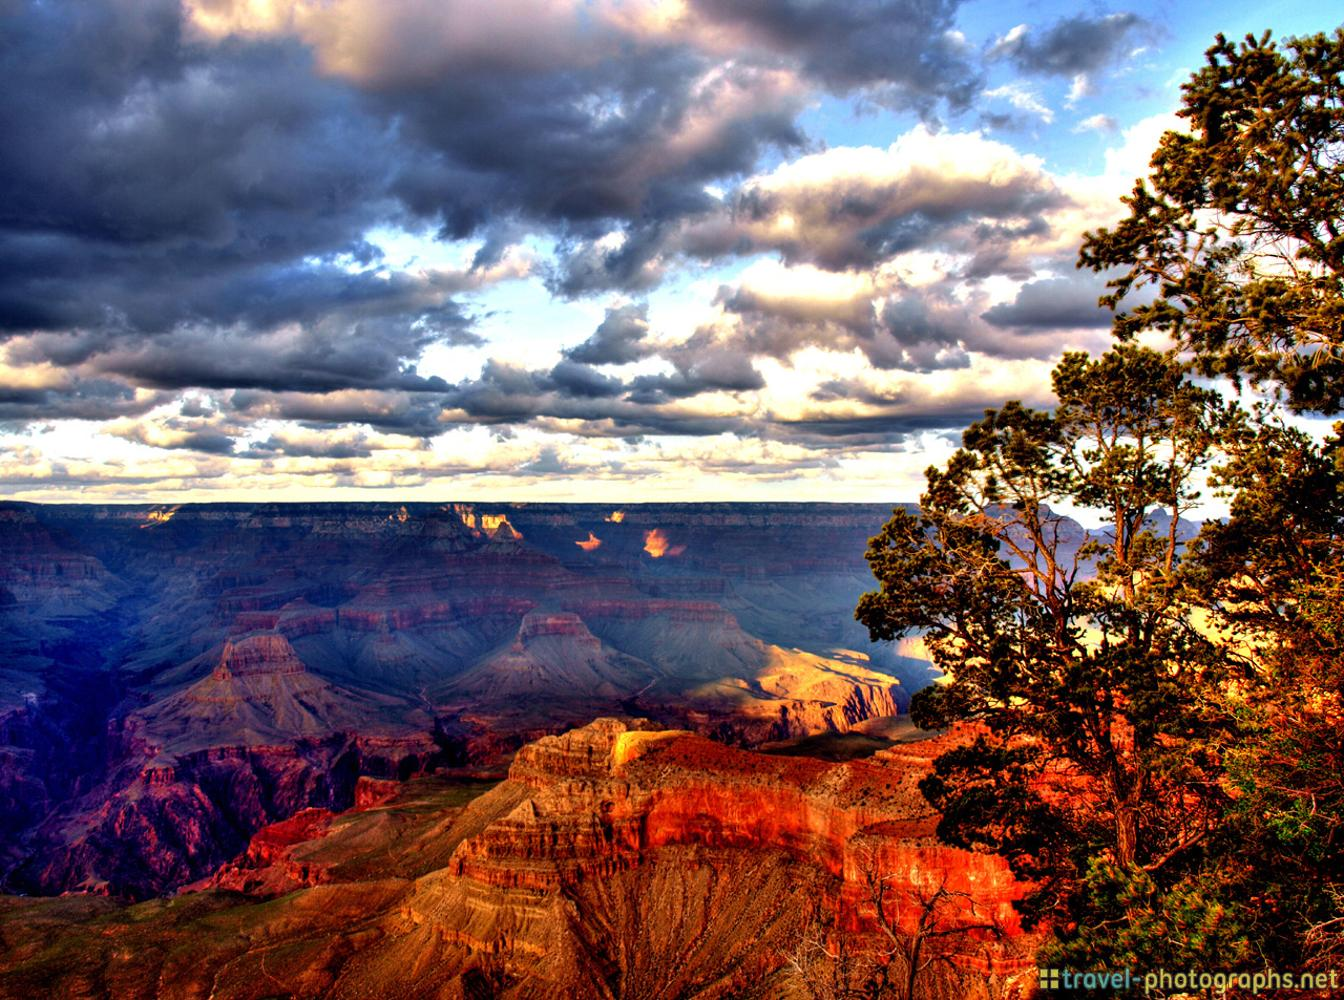 Thunderstorm Wallpaper 3d Grand Canyon Photos Hdr Images Of This Spectacular